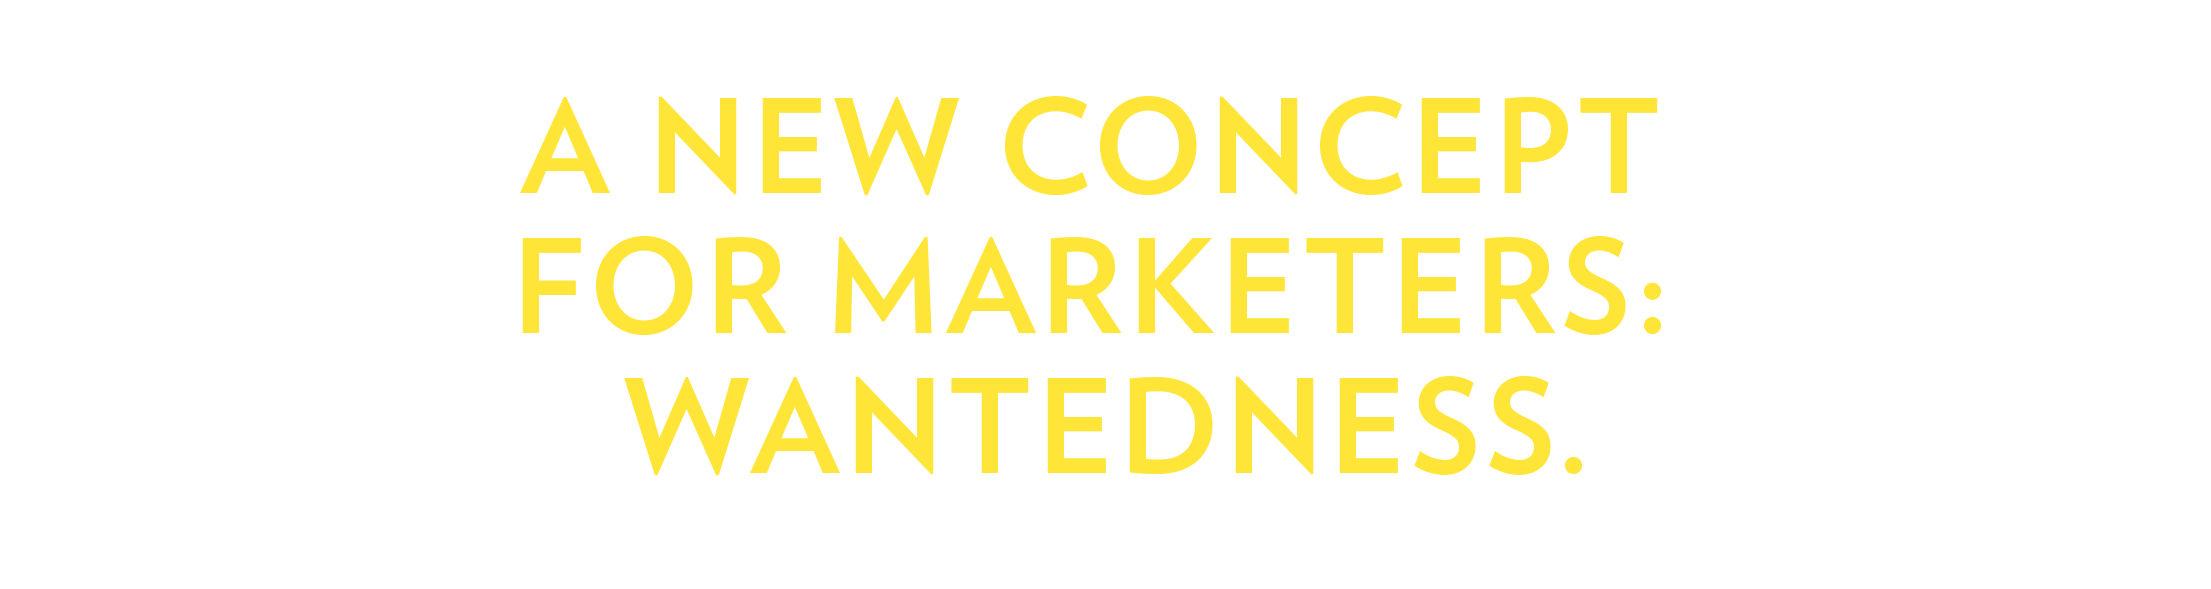 NewConcept - Block - Layout2.png